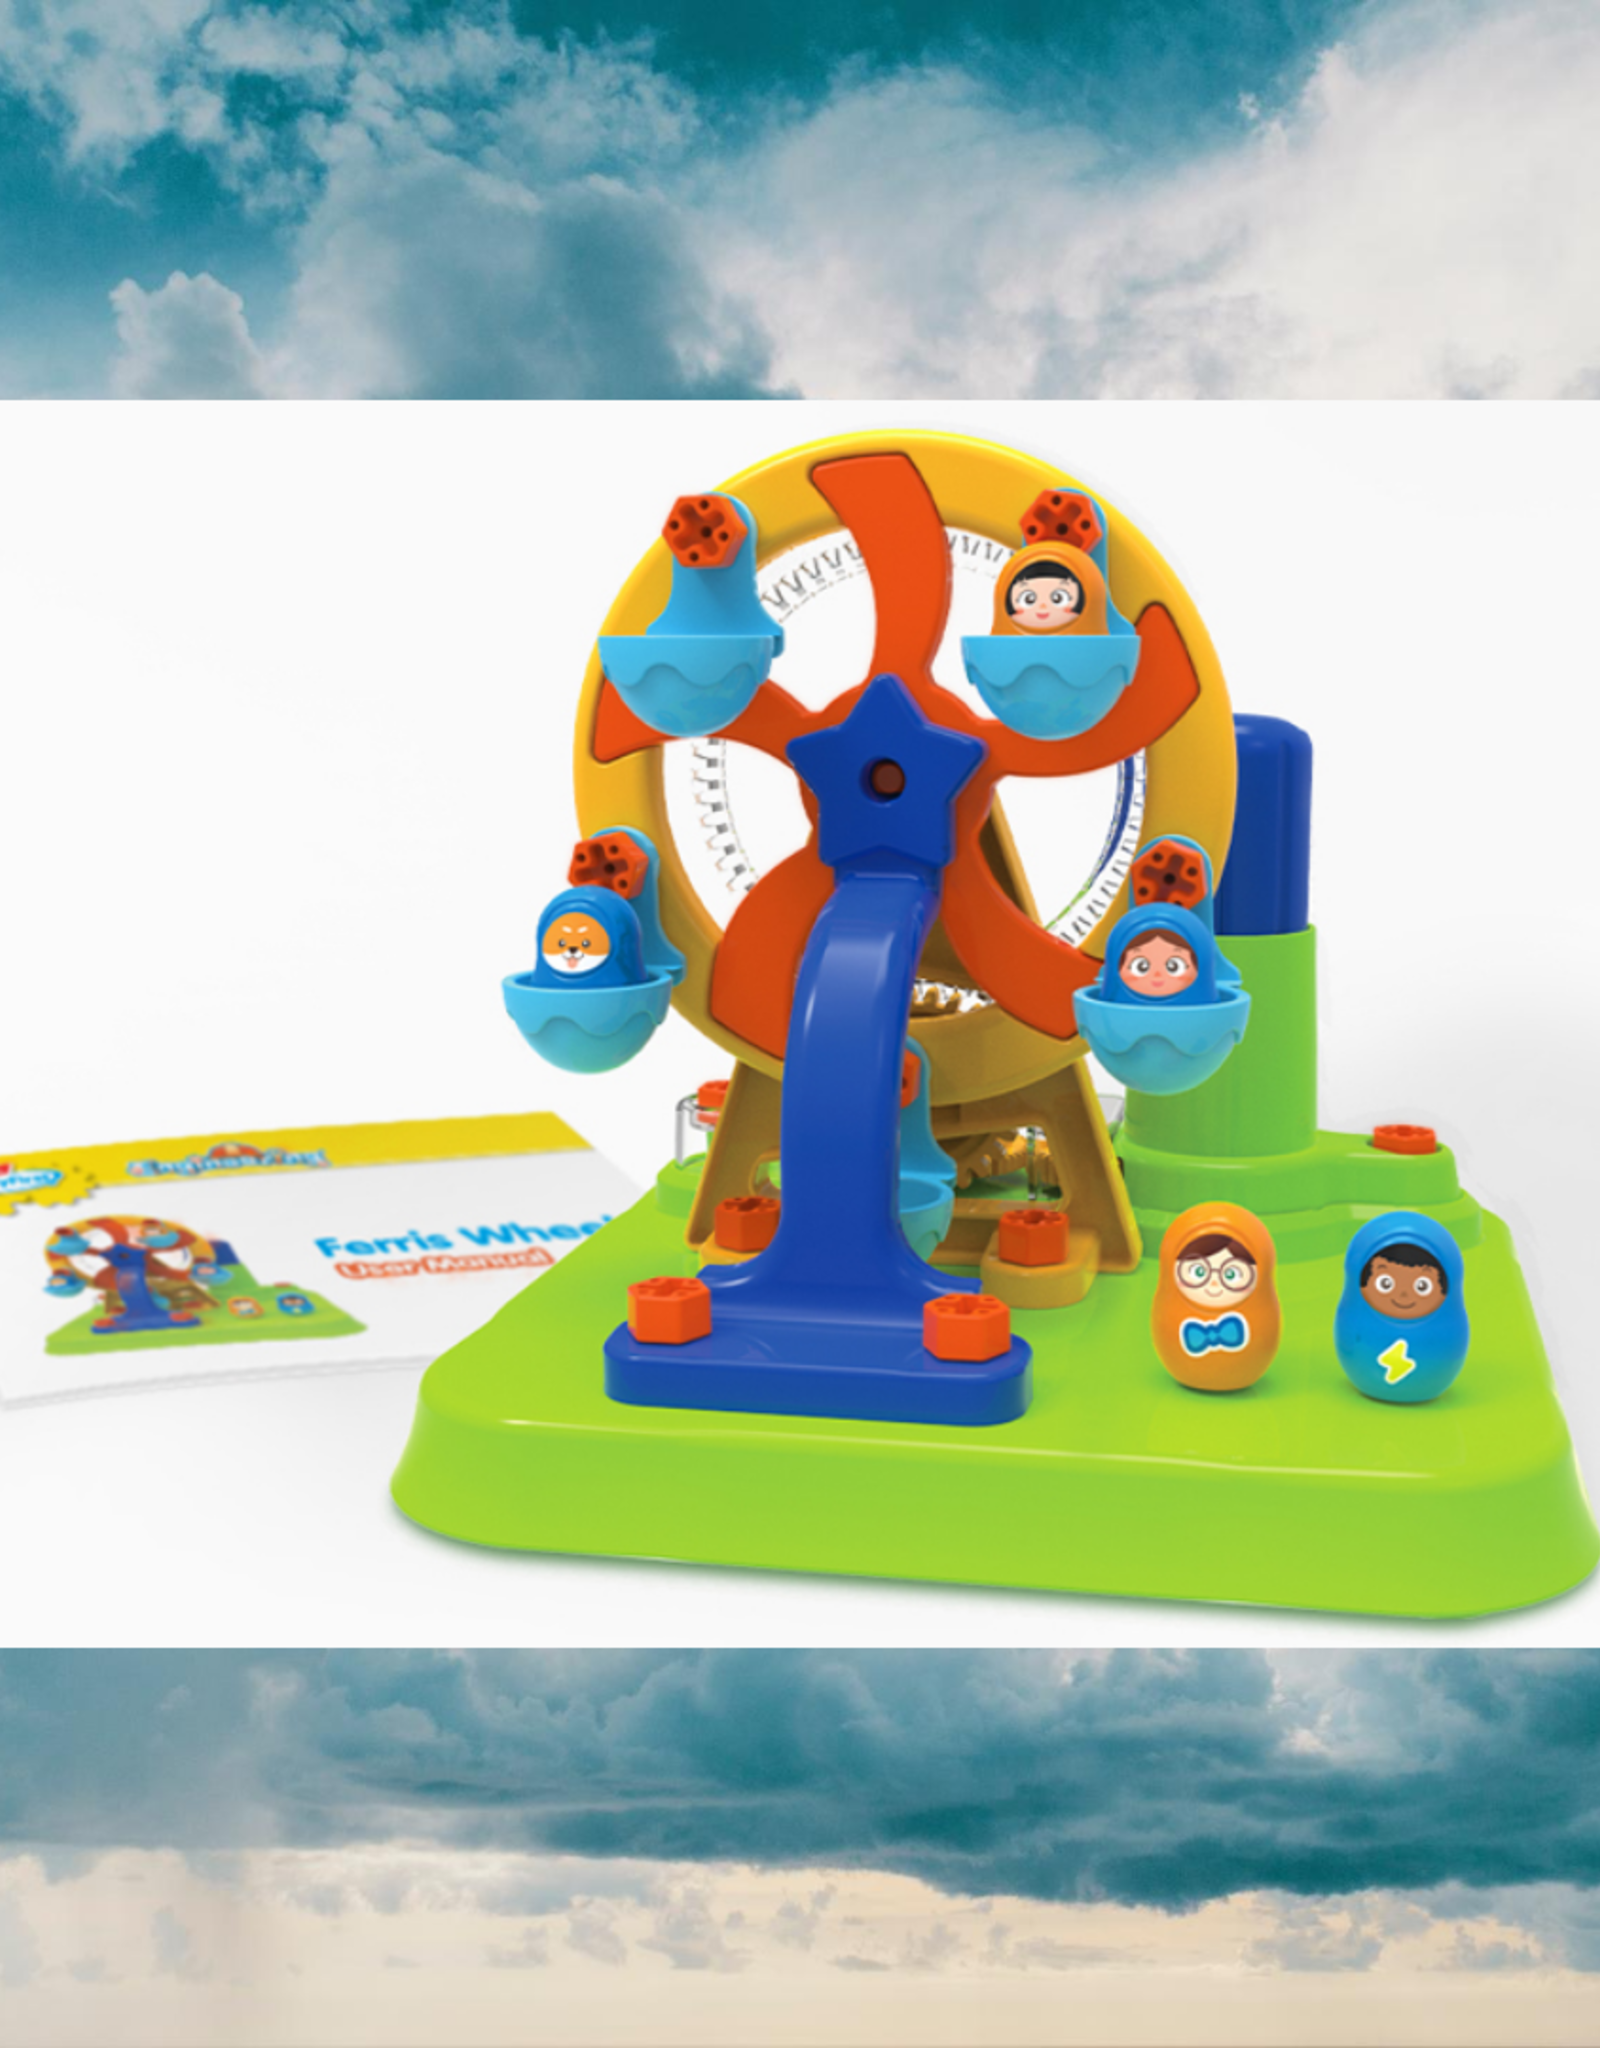 EDUTOYS EDUTOYS MY FIRST ENGINEERING: FERRIS WHEEL